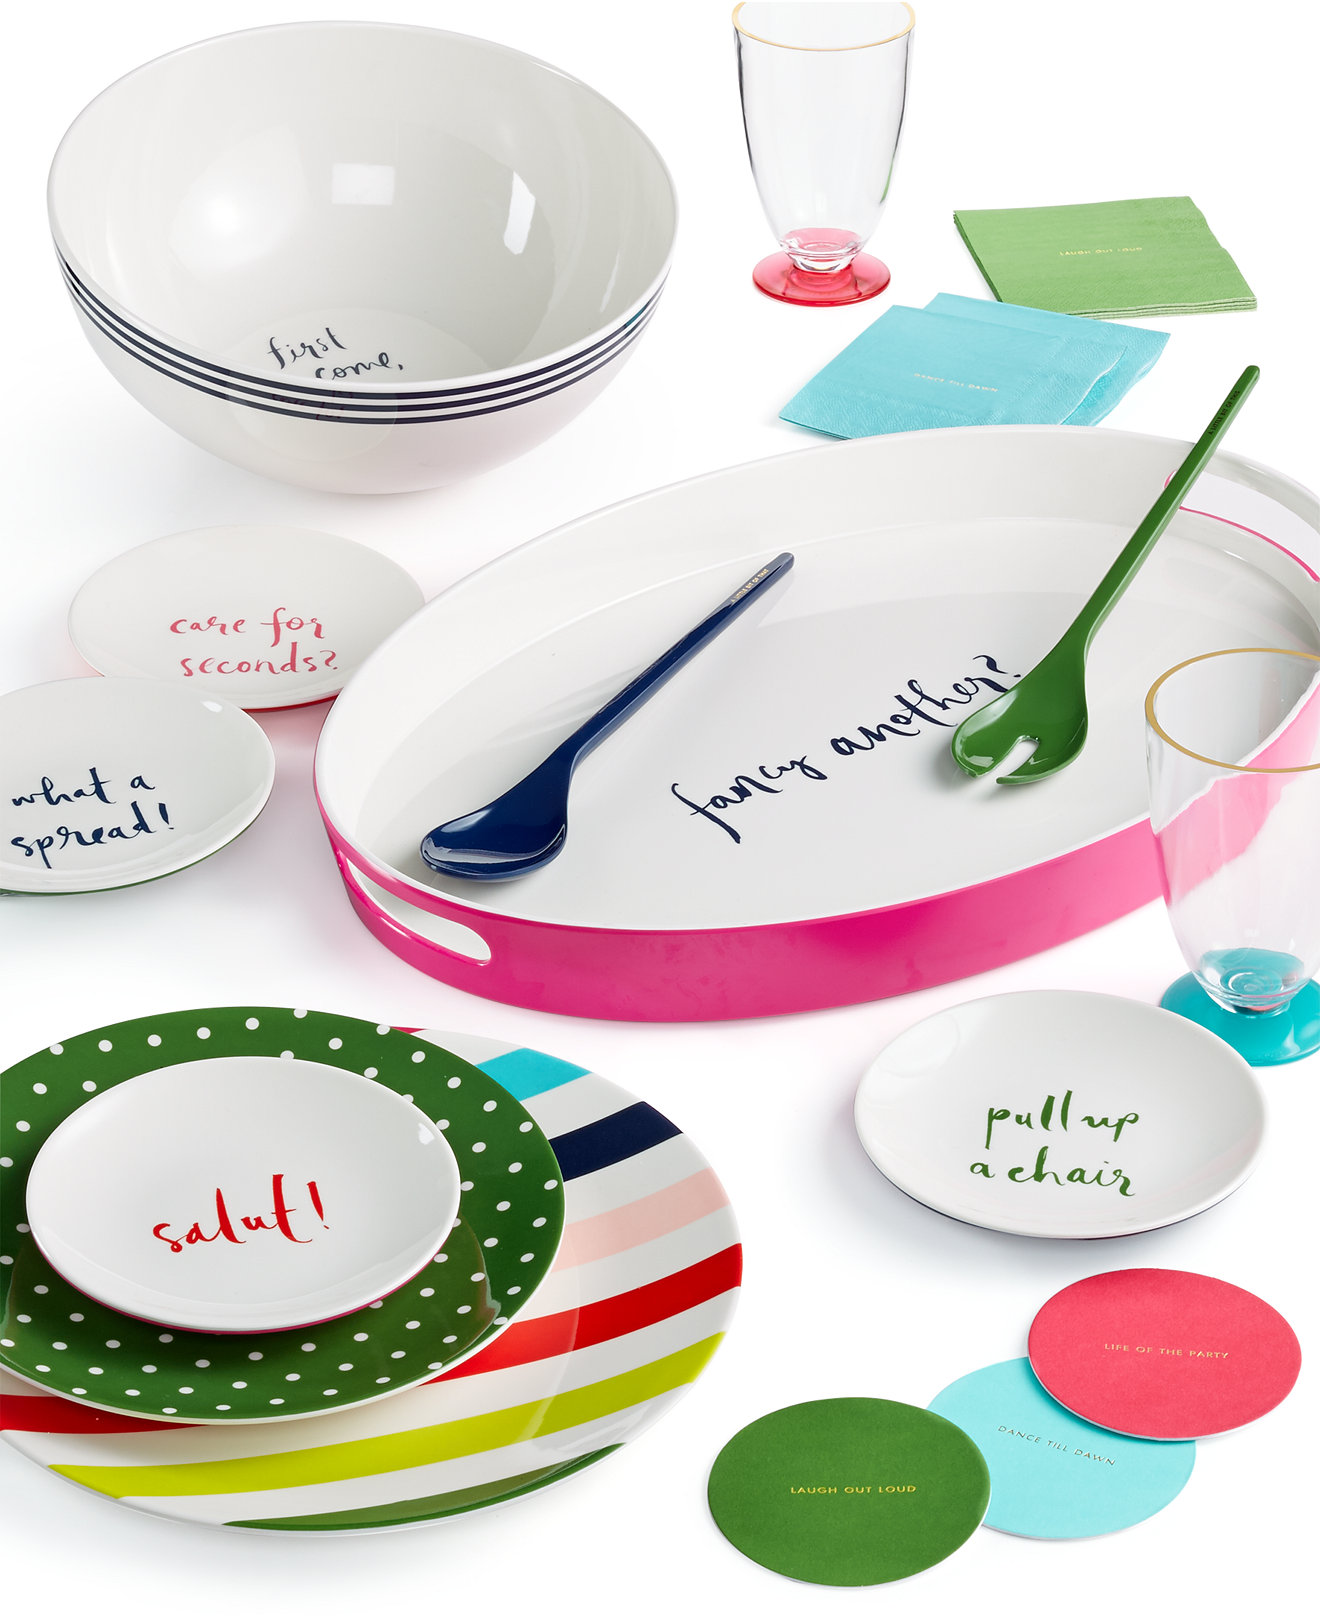 "kate spade new york ""Salut!"" Collection"